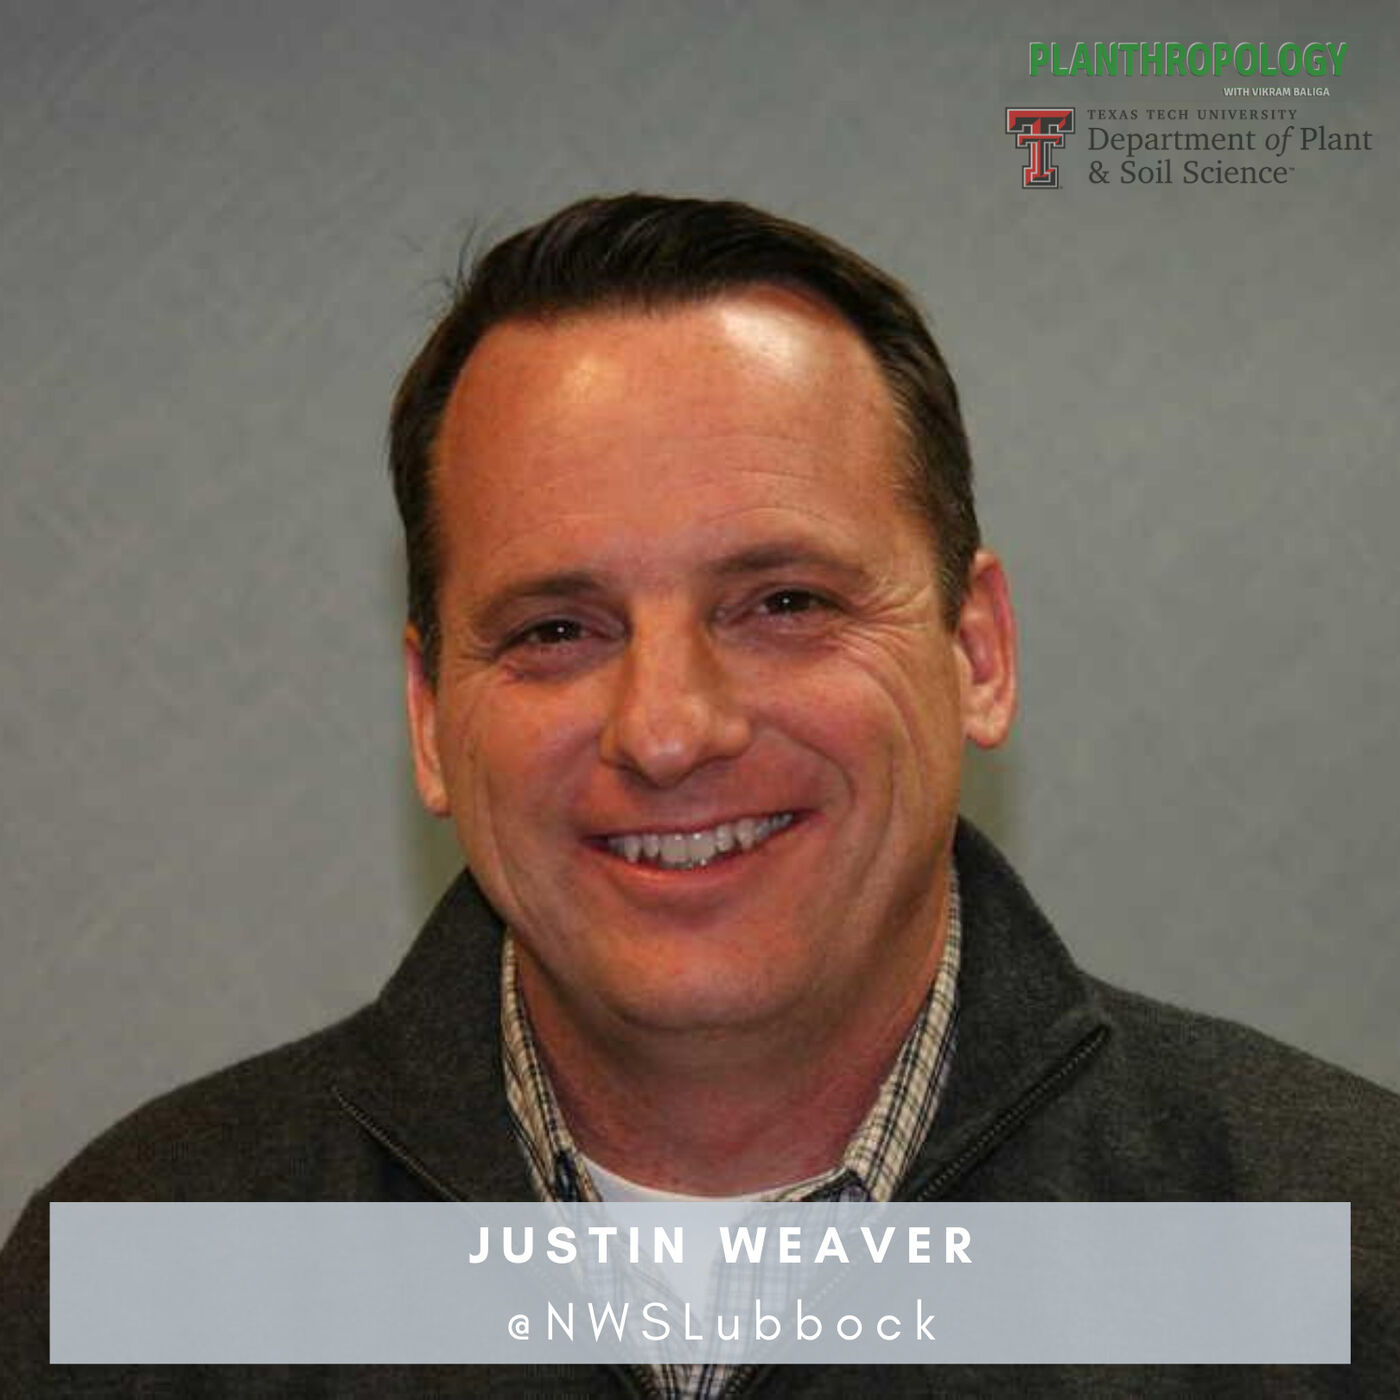 46. Chasing Storms, Predicting the Future, and the Most Popular Professor w/ Justin Weaver